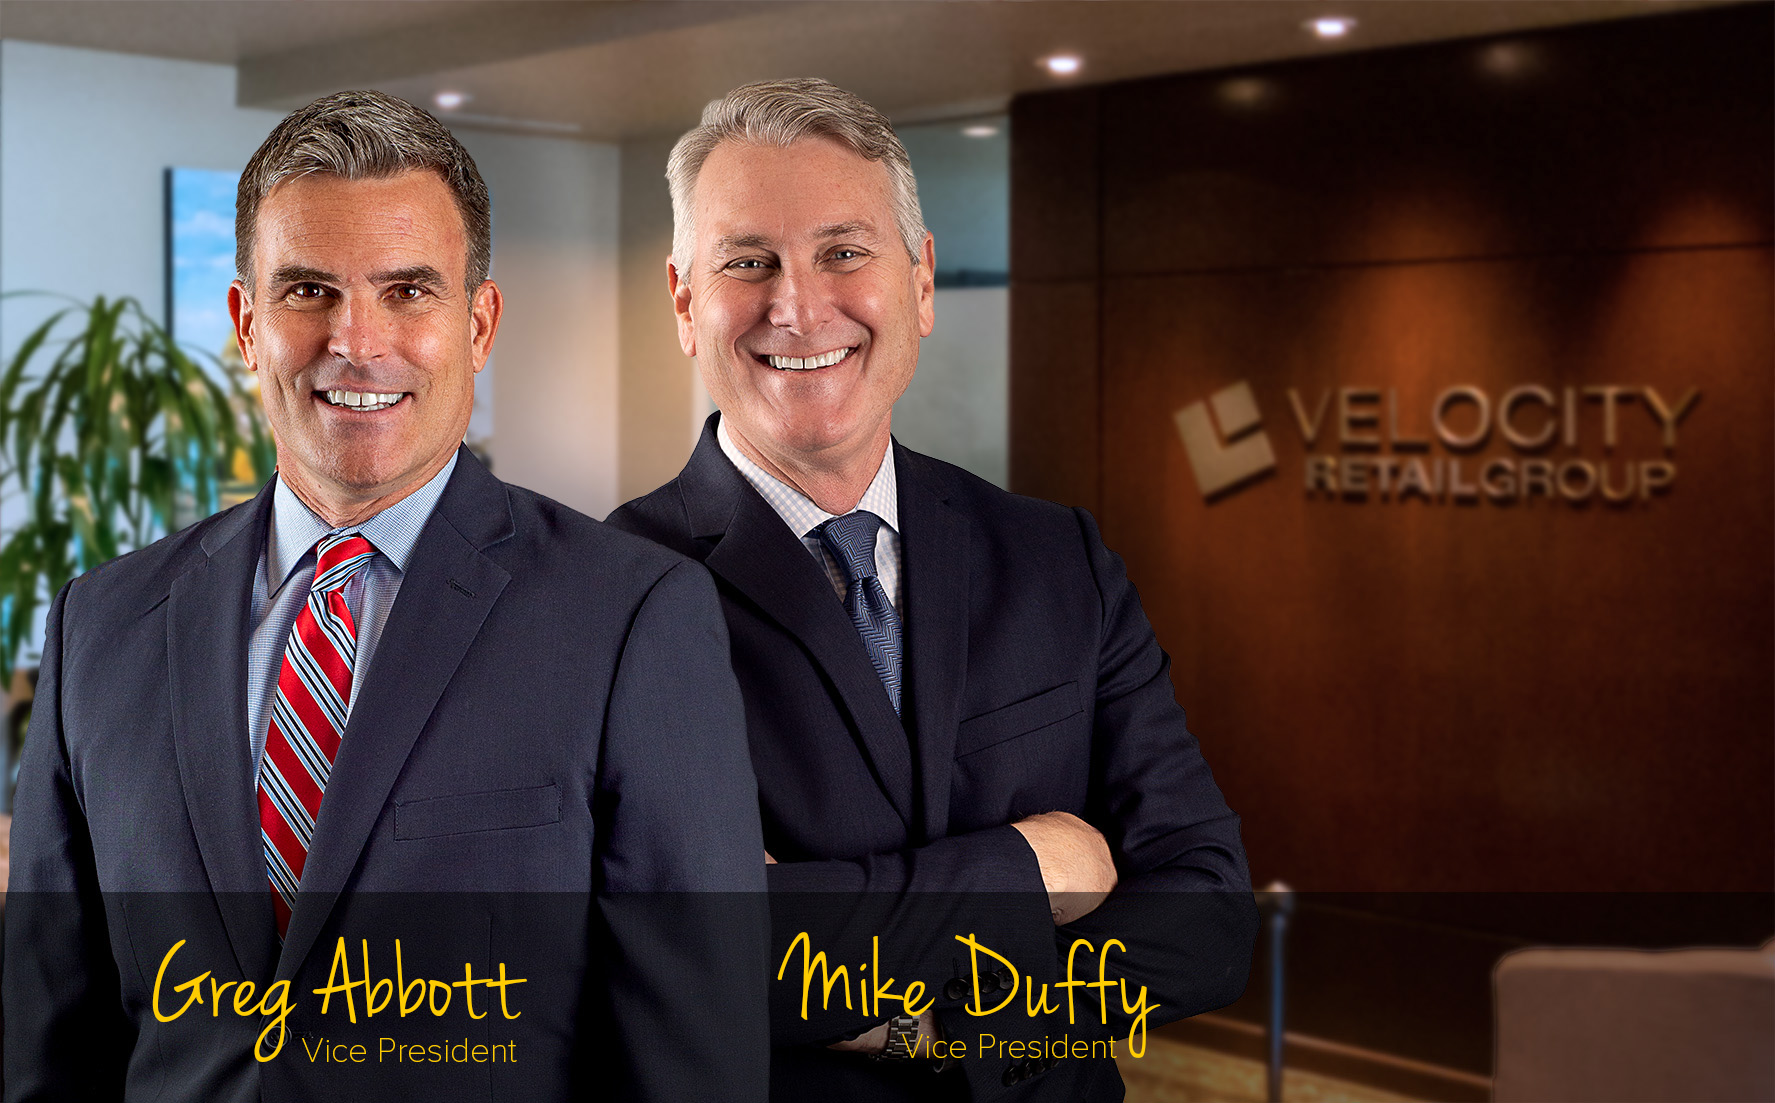 Experienced Investment Team Joins Velocity Retail Group 1